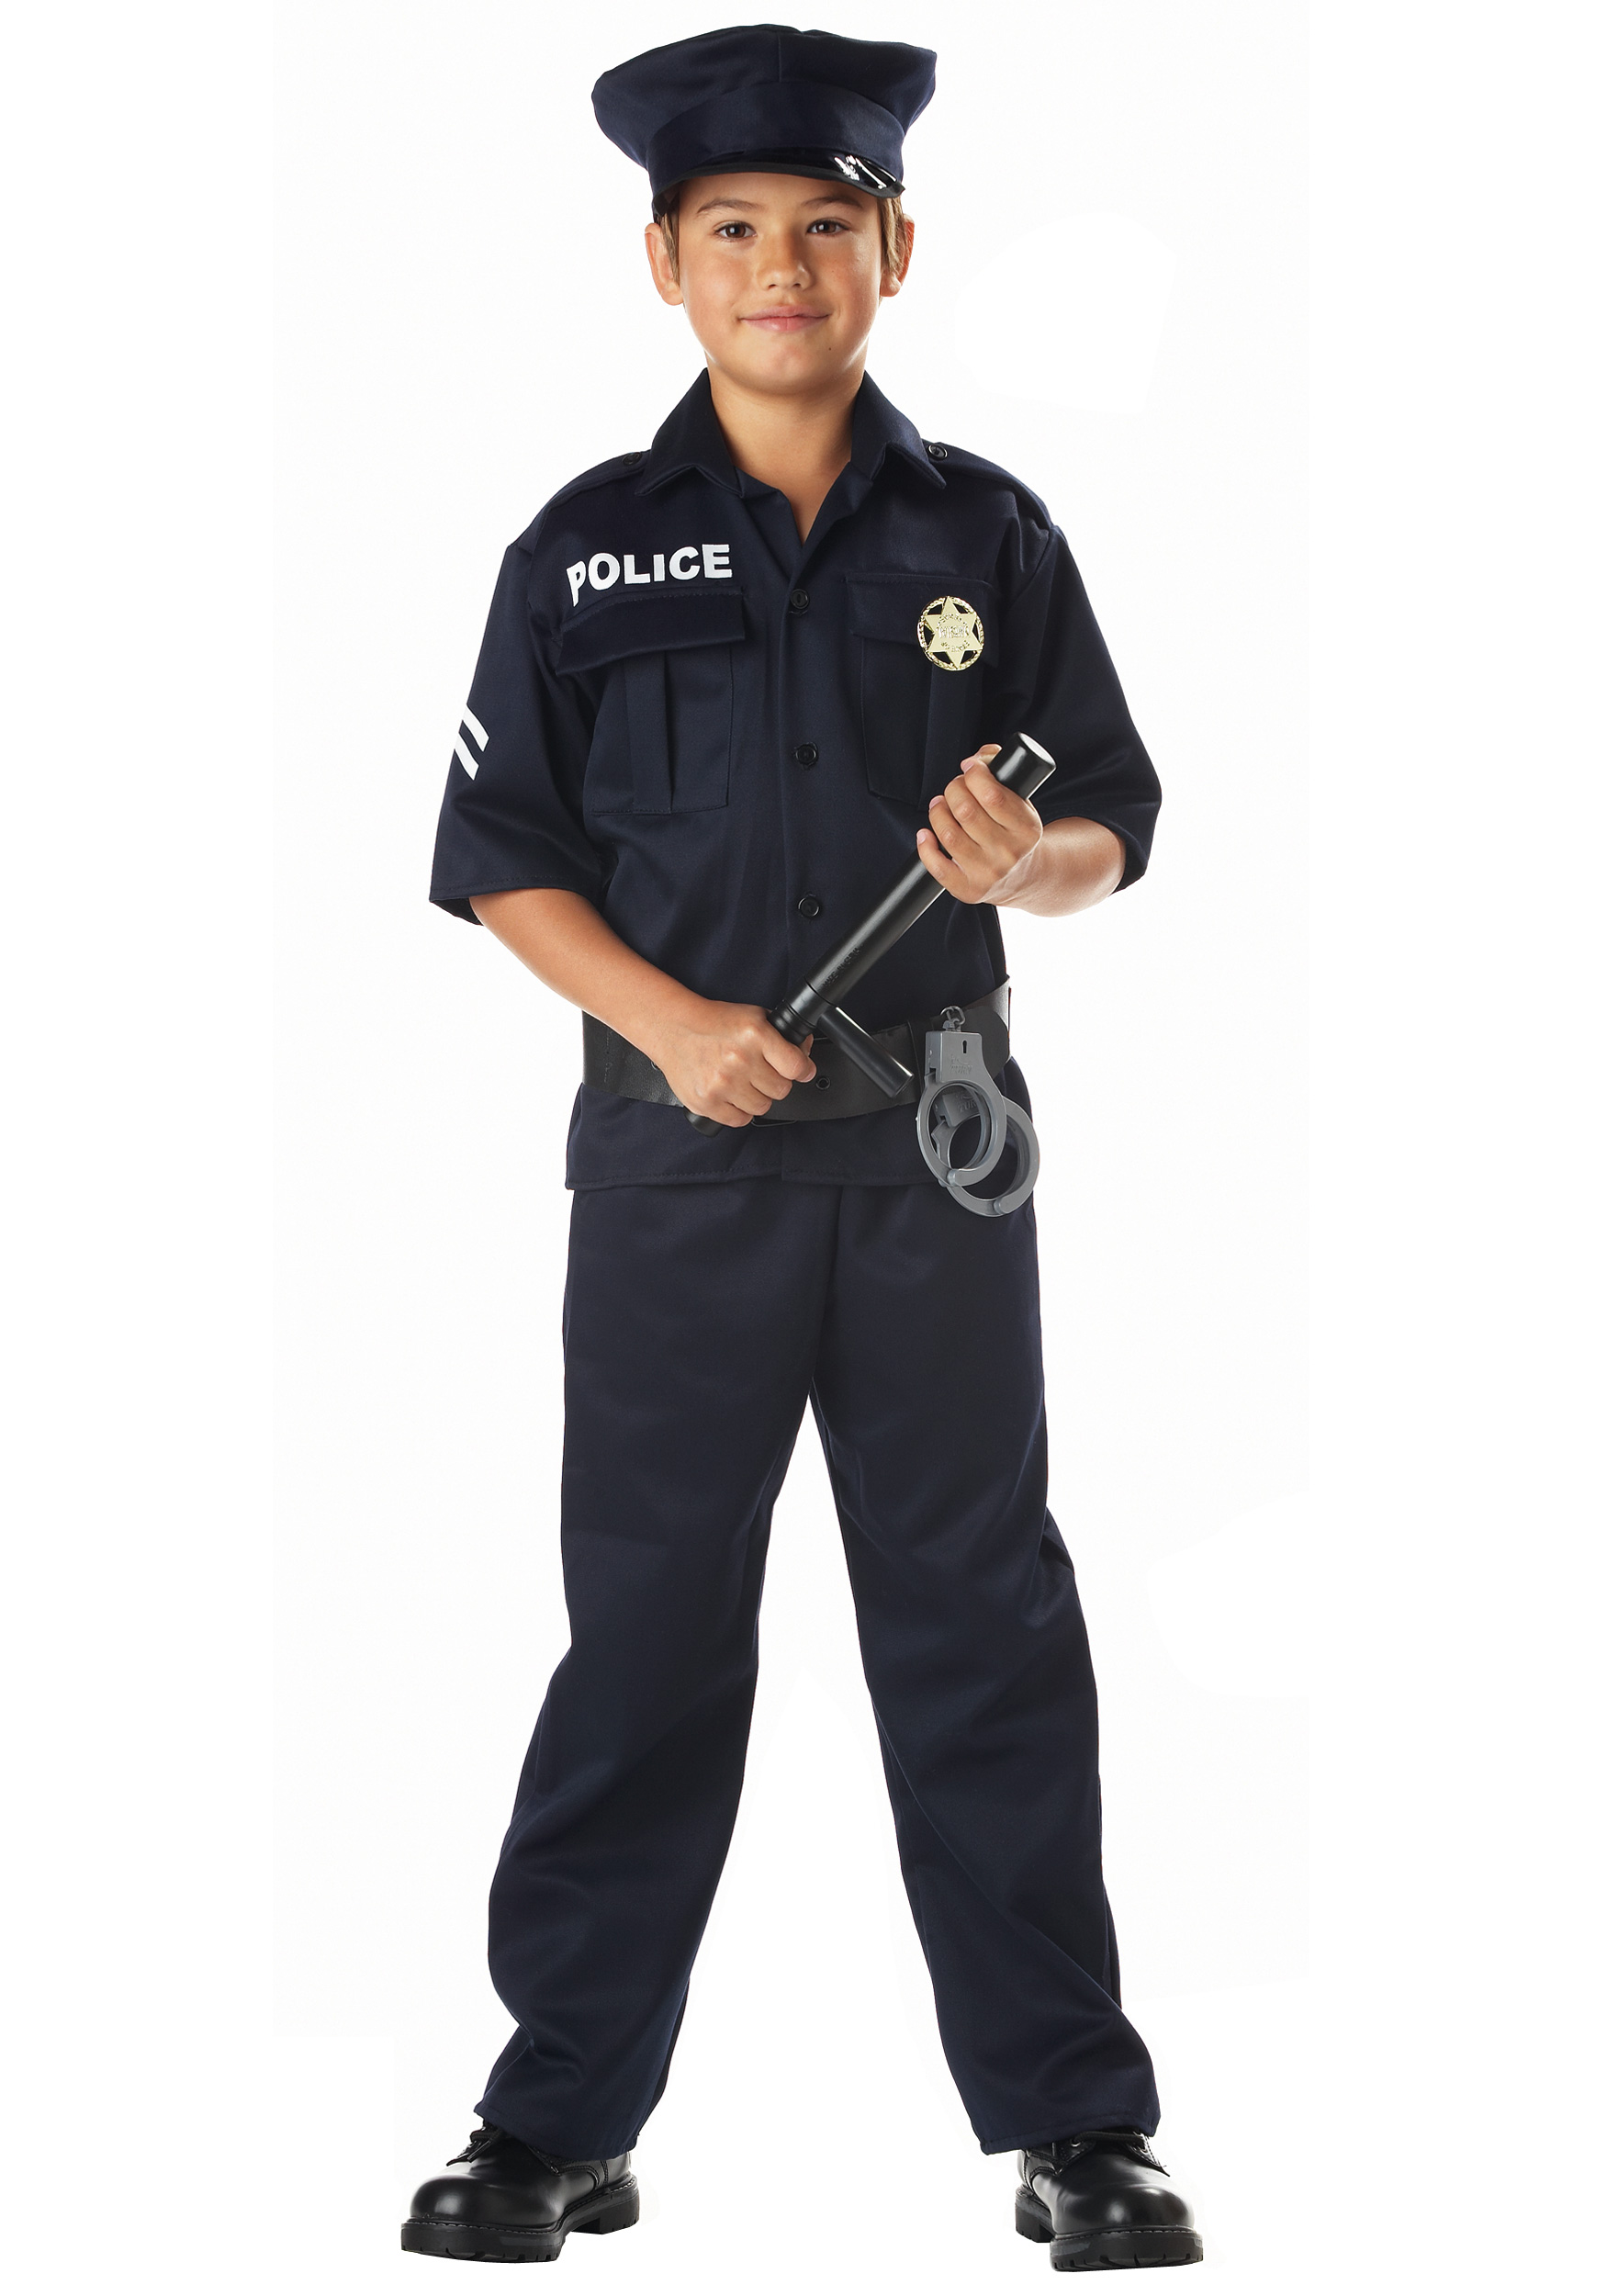 Top 5 school security products to keep our children safe techpro security products - Police officer child costume ...